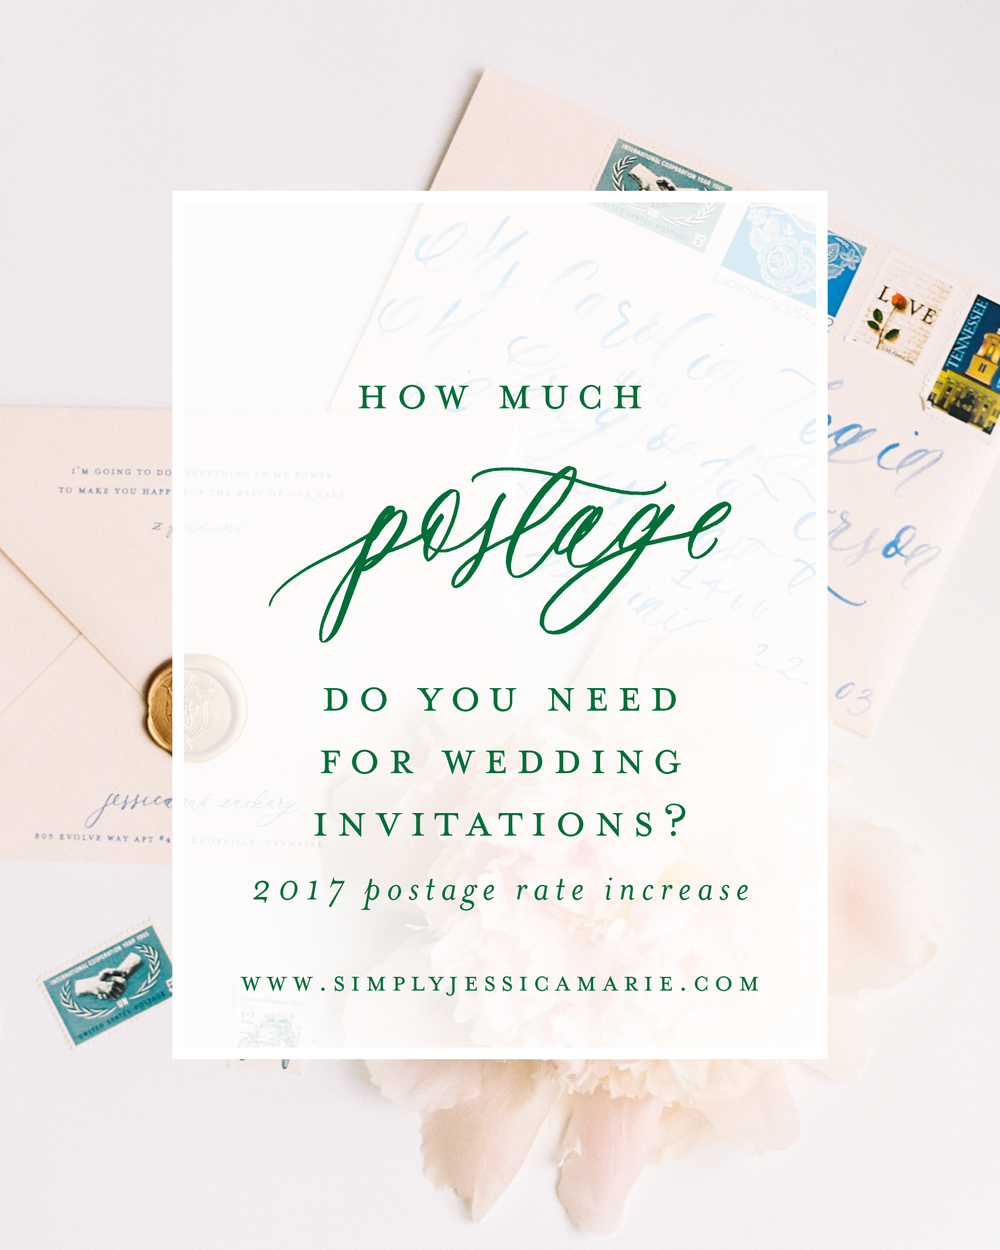 How much postage do you need for wedding invitations? | Wedding stationery advice from Simply Jessica Marie